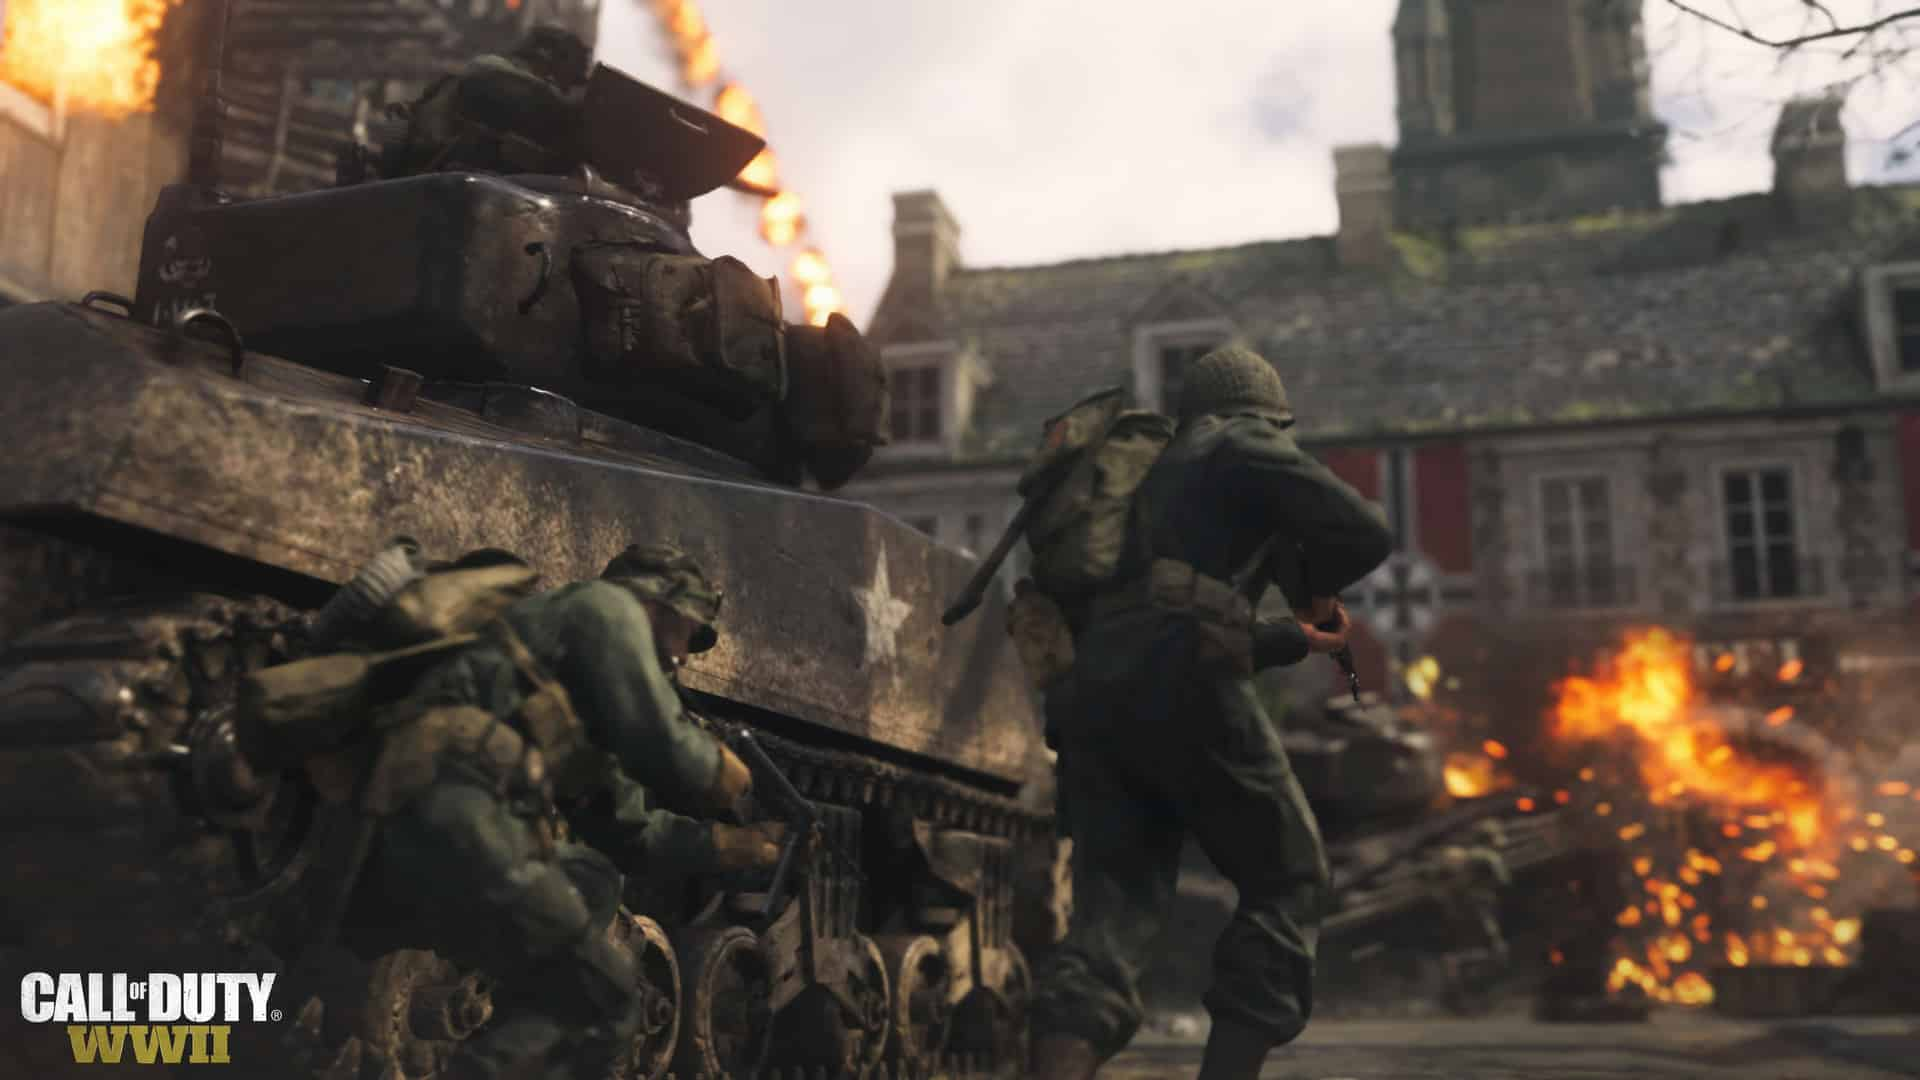 Activision is Being Sued Showing Military Equipment in Call of Duty Games